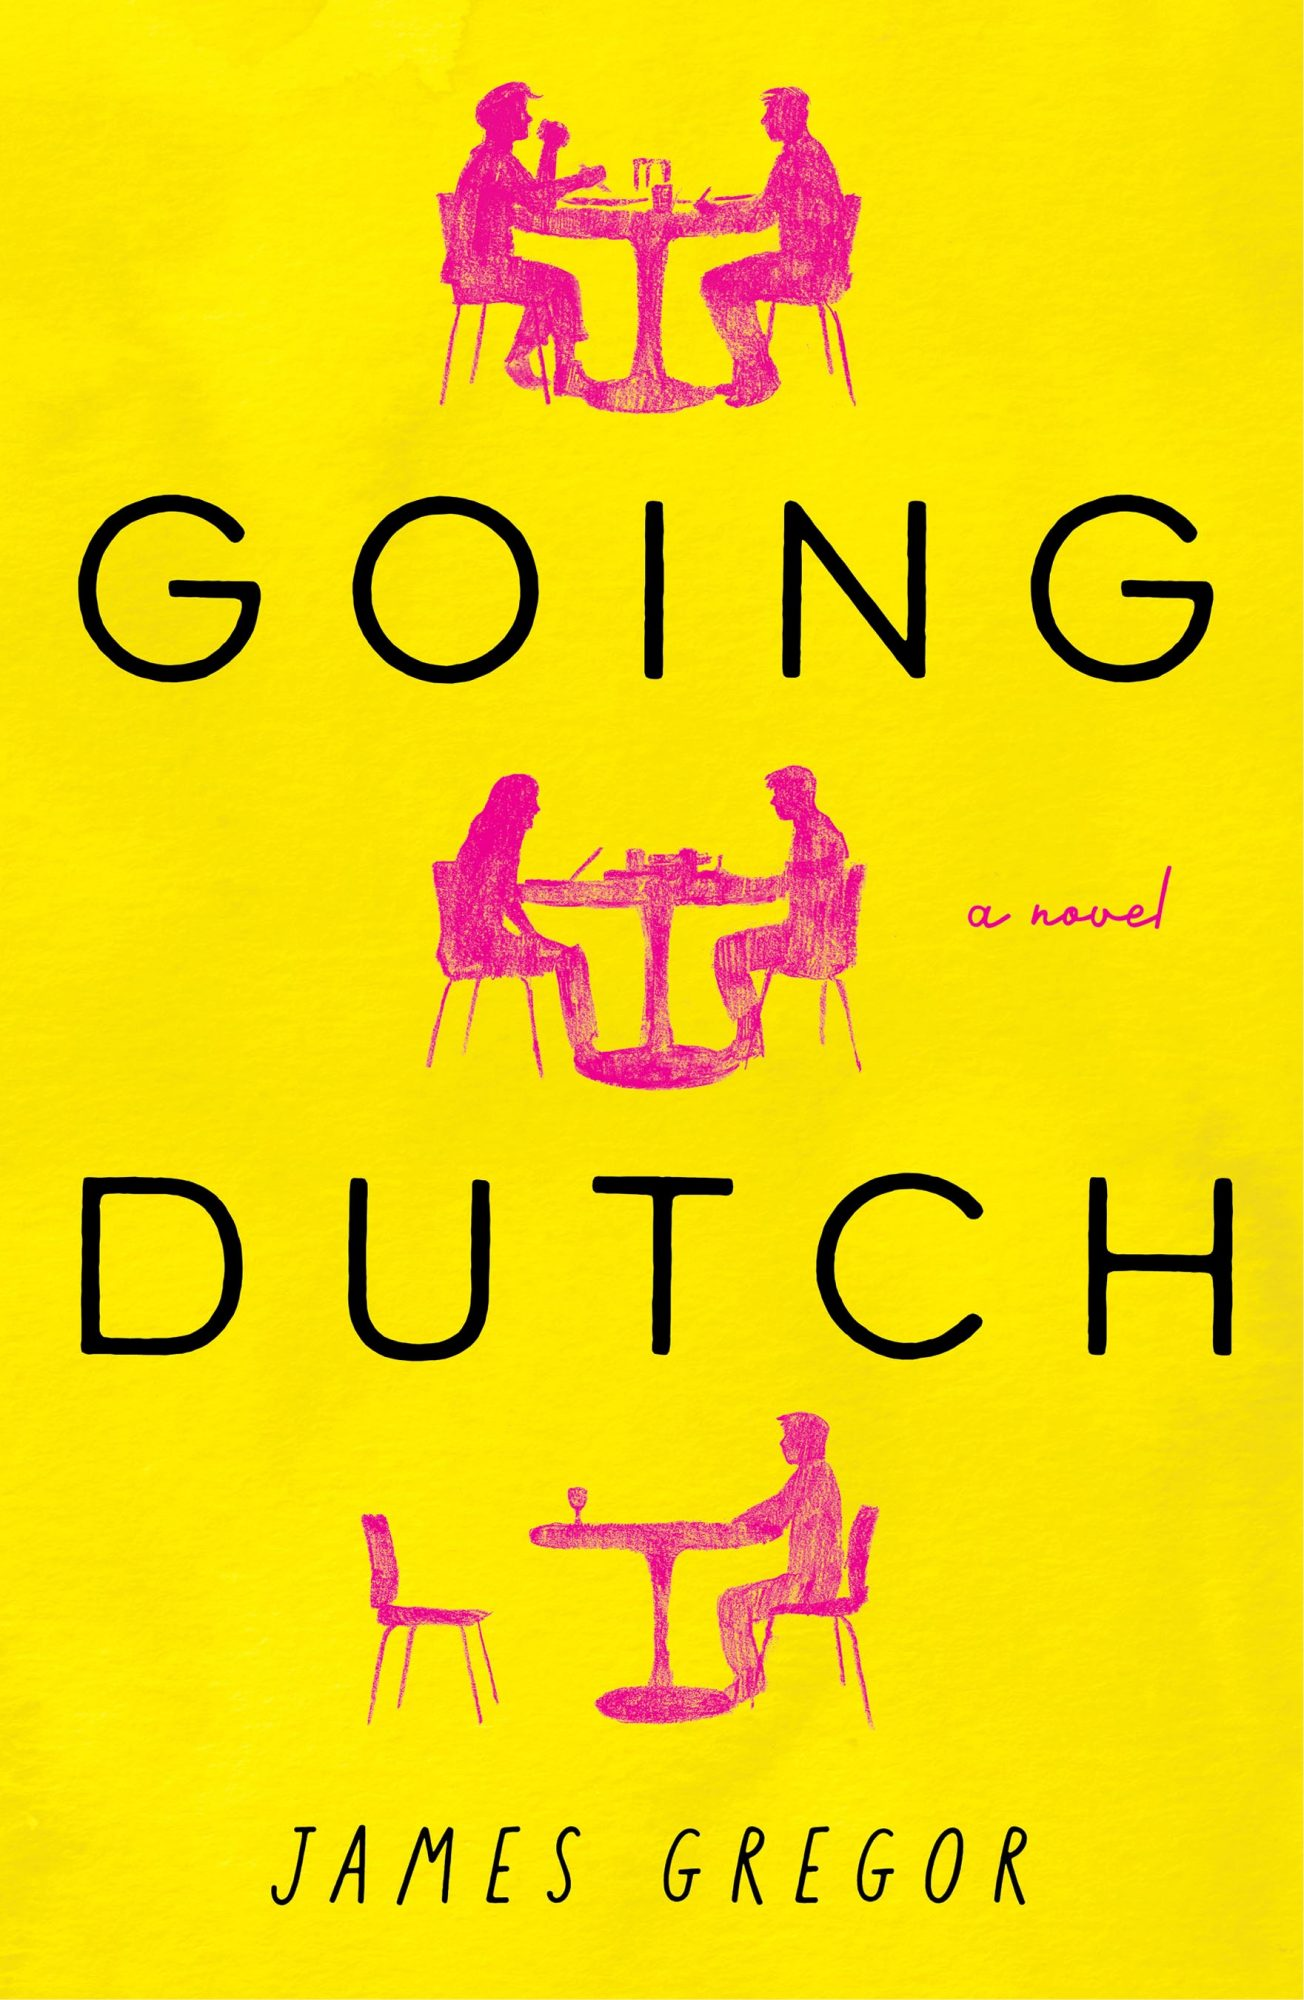 Going Dutch, by James Gregor